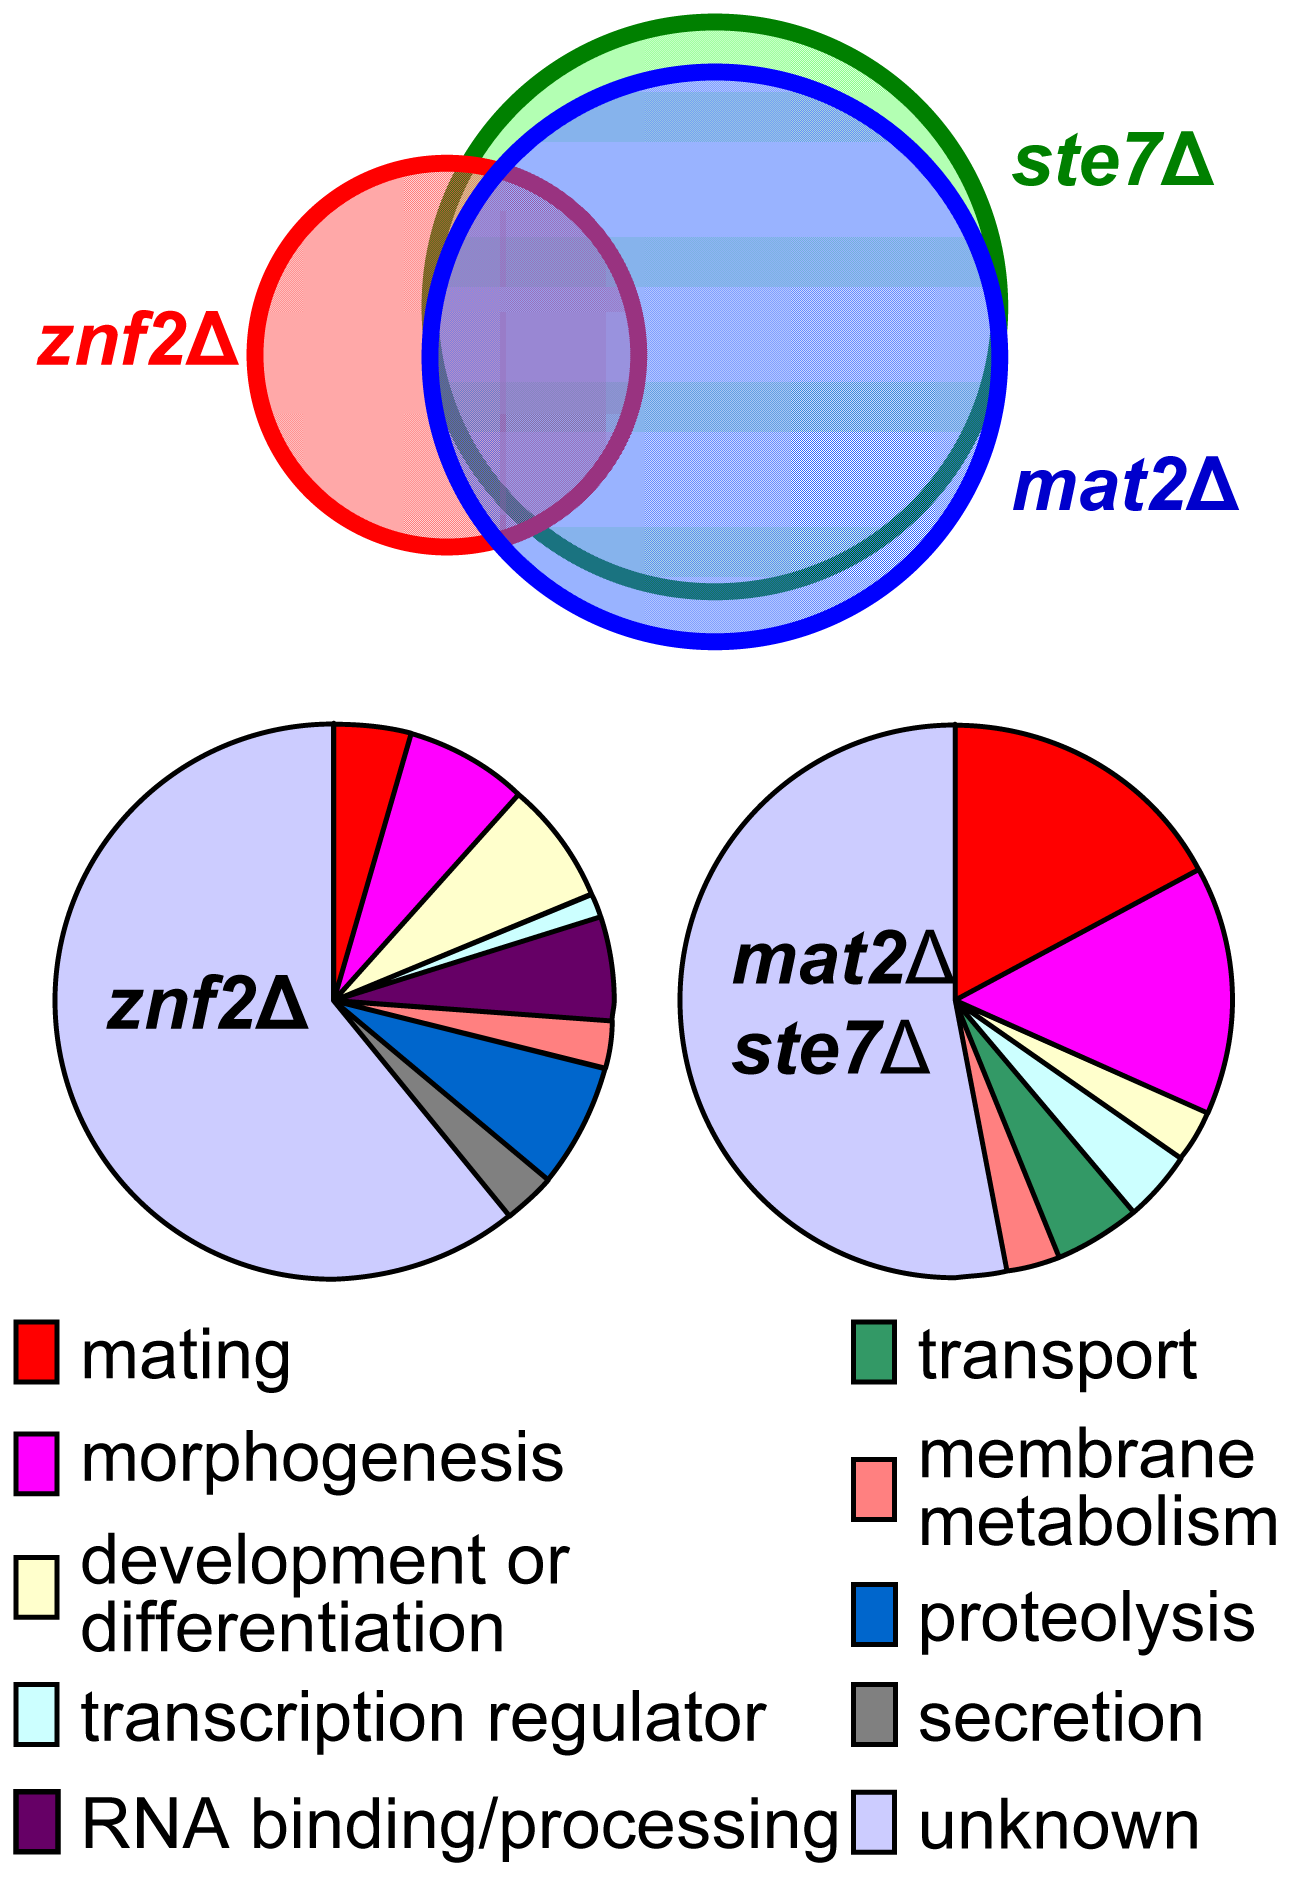 Gene expression profiles of <i>ste7</i>Δ, <i>mat2</i>Δ, and <i>znf2</i>Δ mutants during bilateral mating.